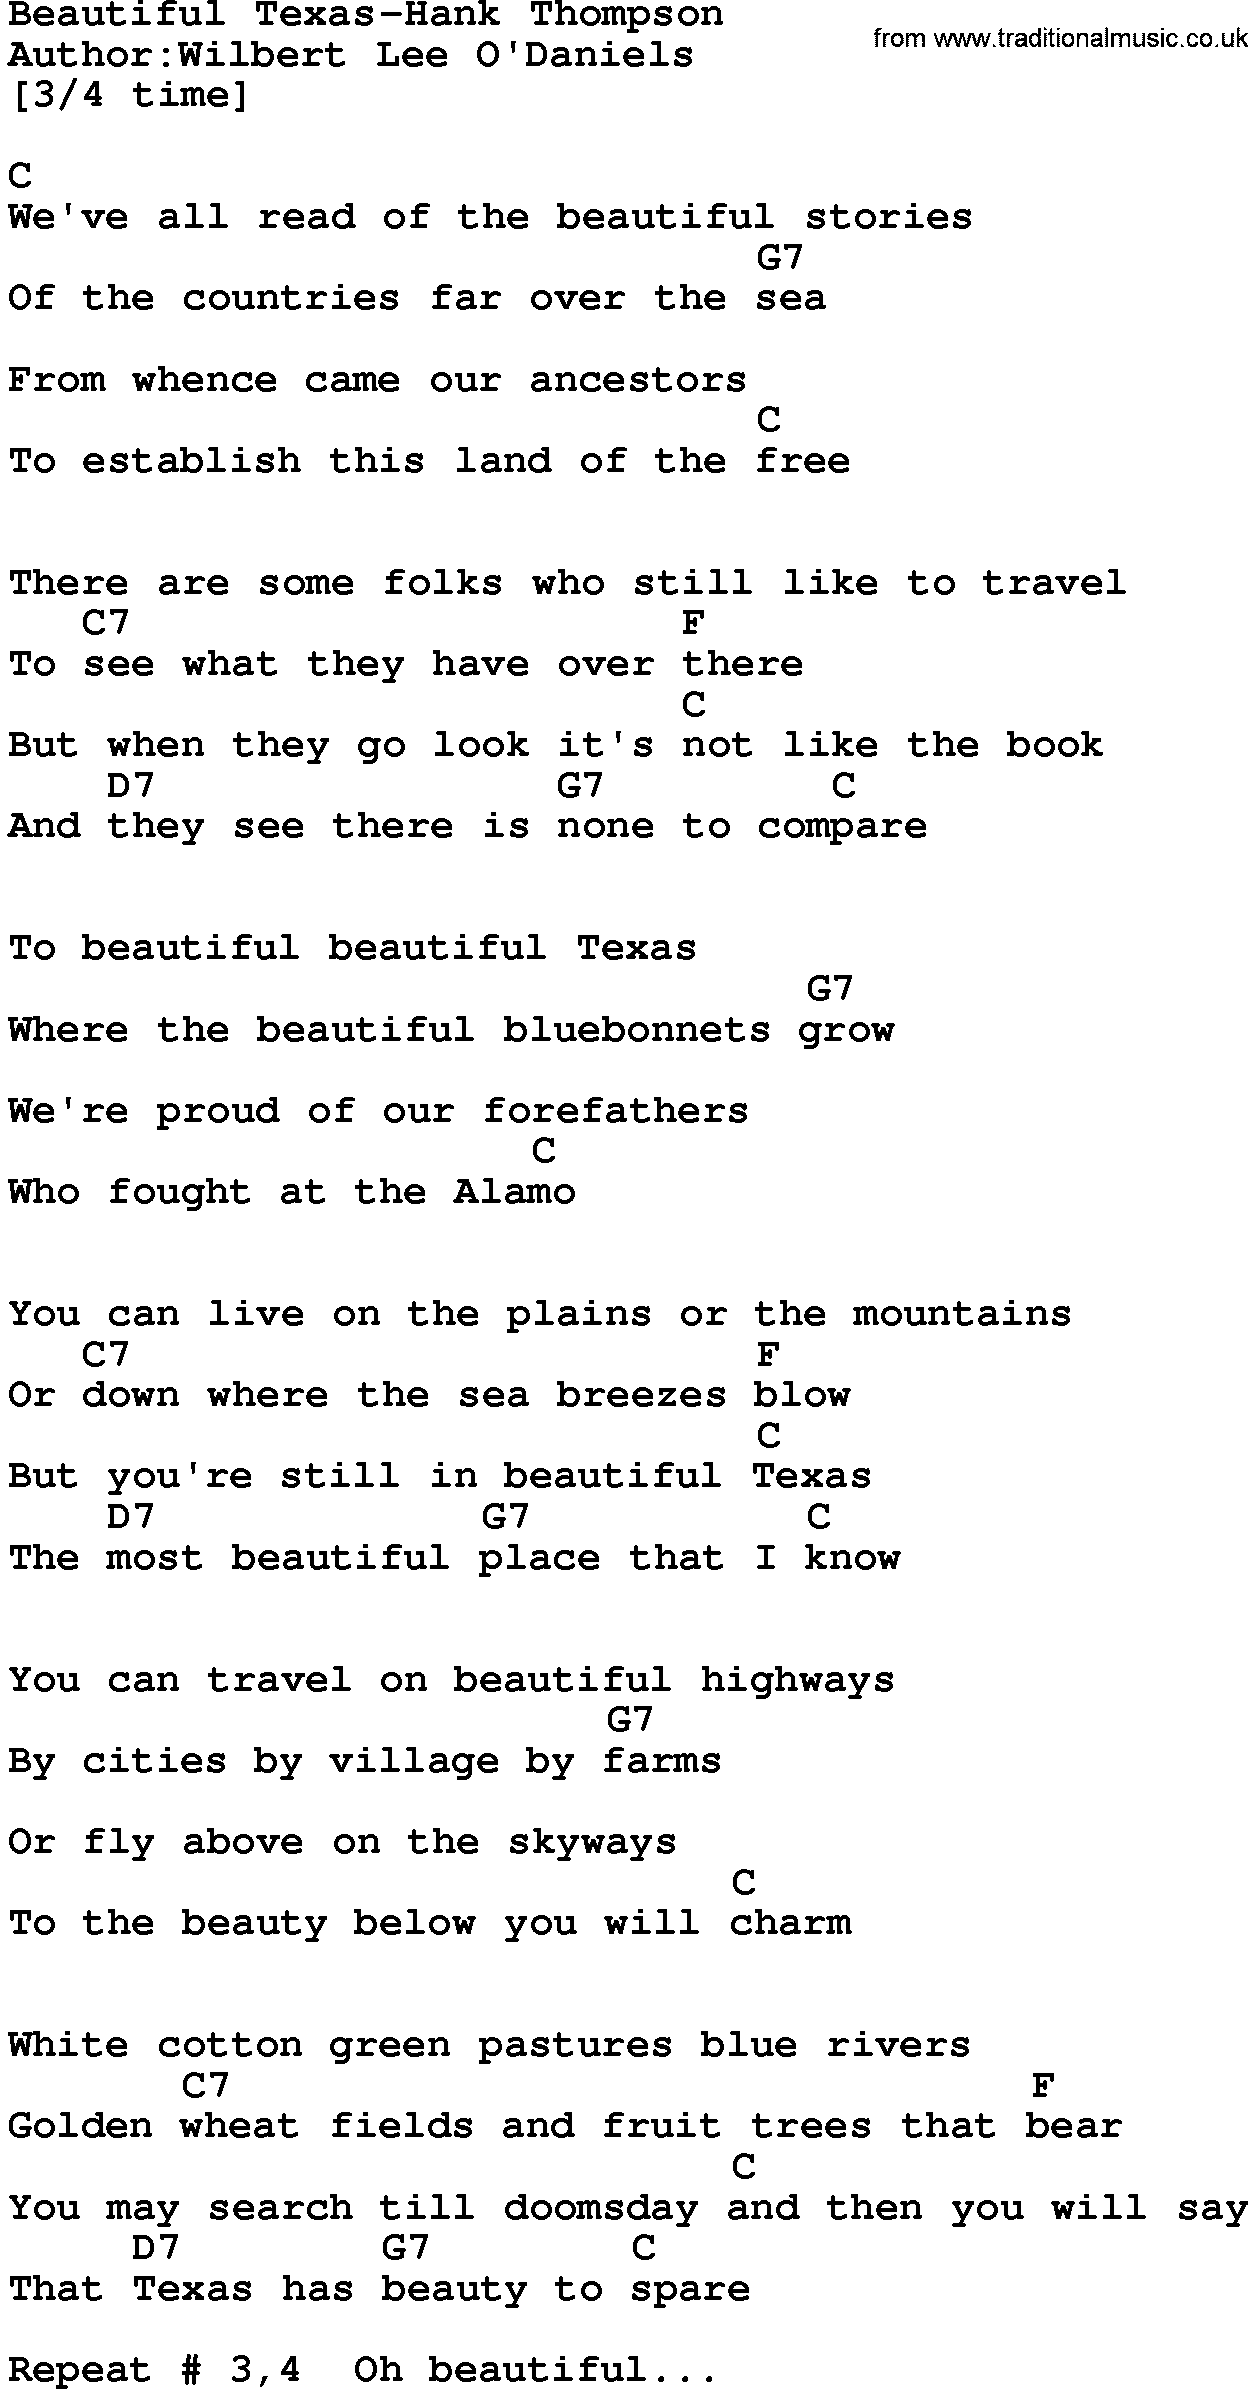 Country Music Beautiful Texas Hank Thompson Lyrics And Chords Grow as we go songtext. traditional music library